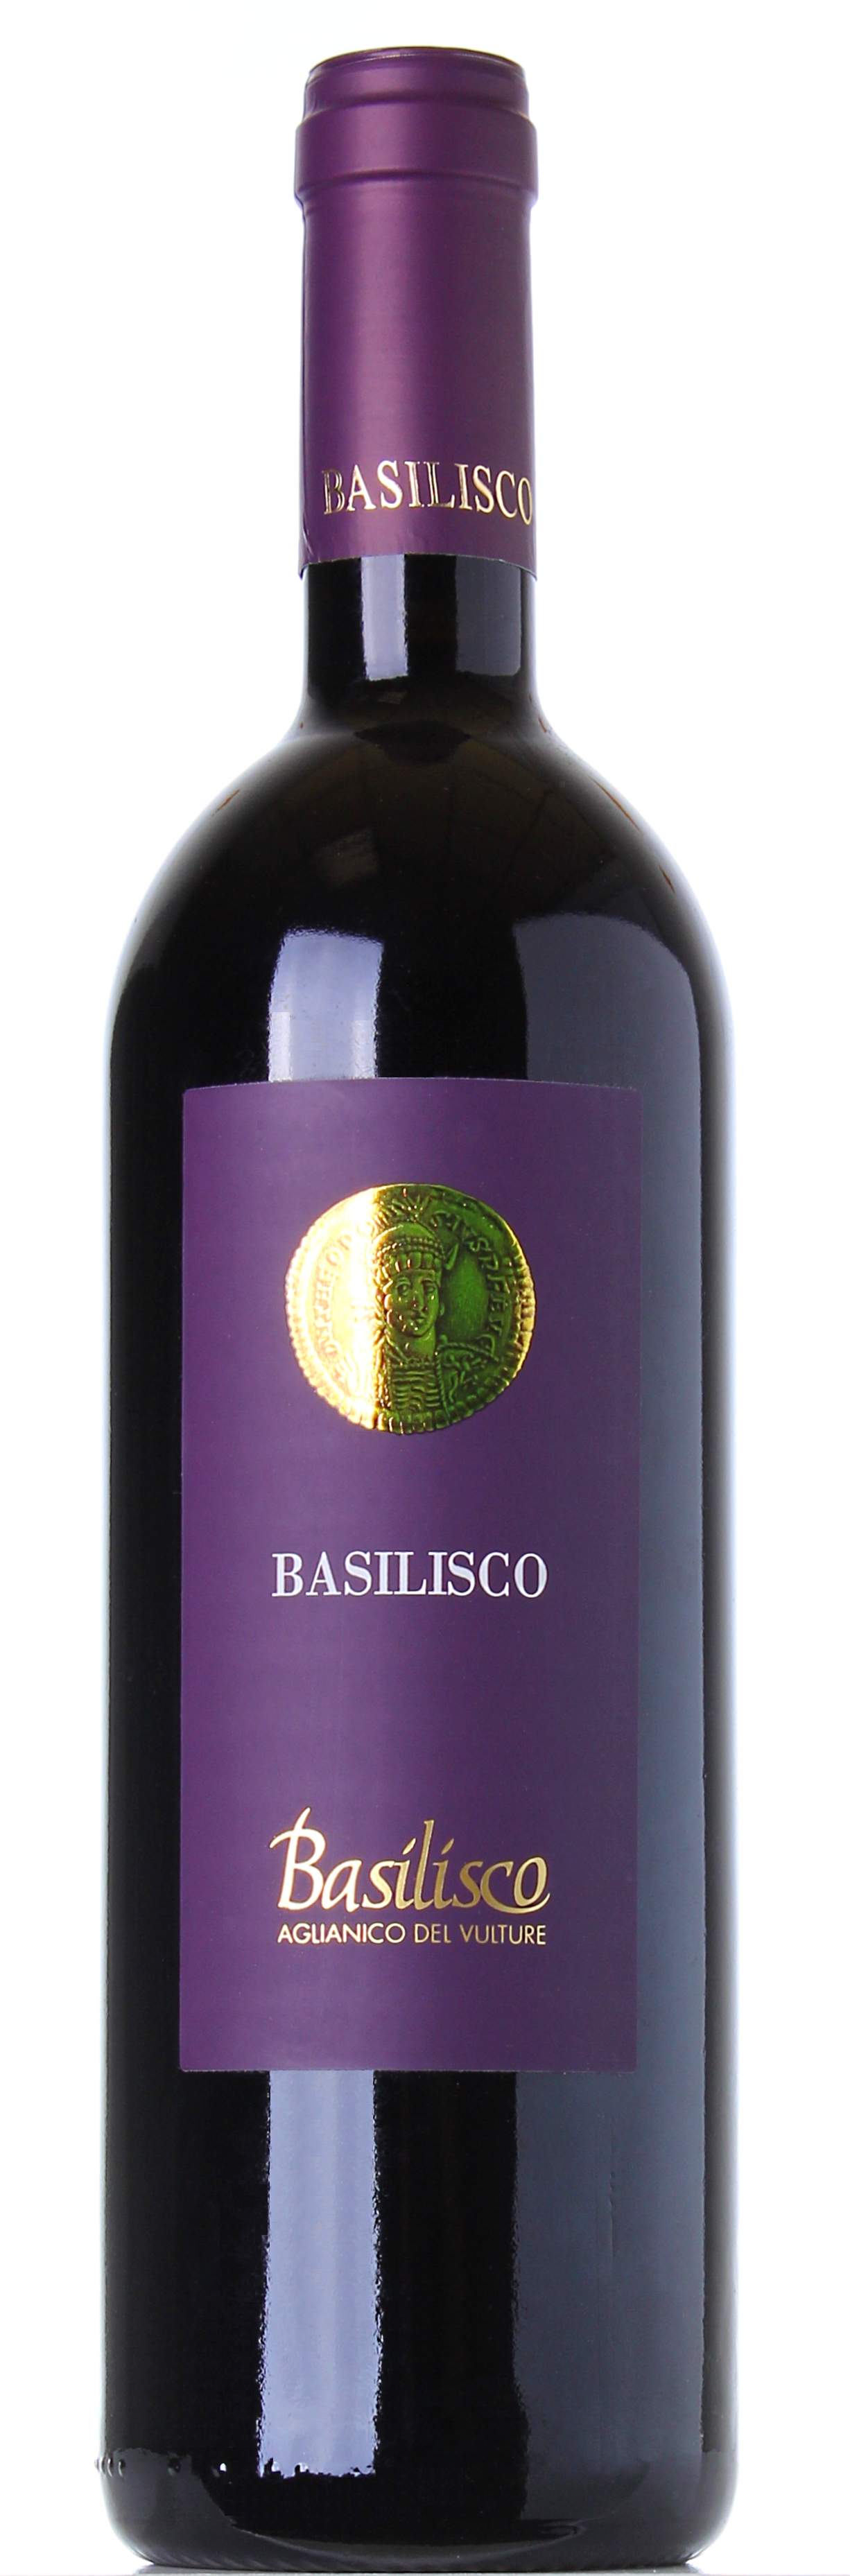 BASILISCO AGLIANICO DEL VULTURE BASILISCO 2008